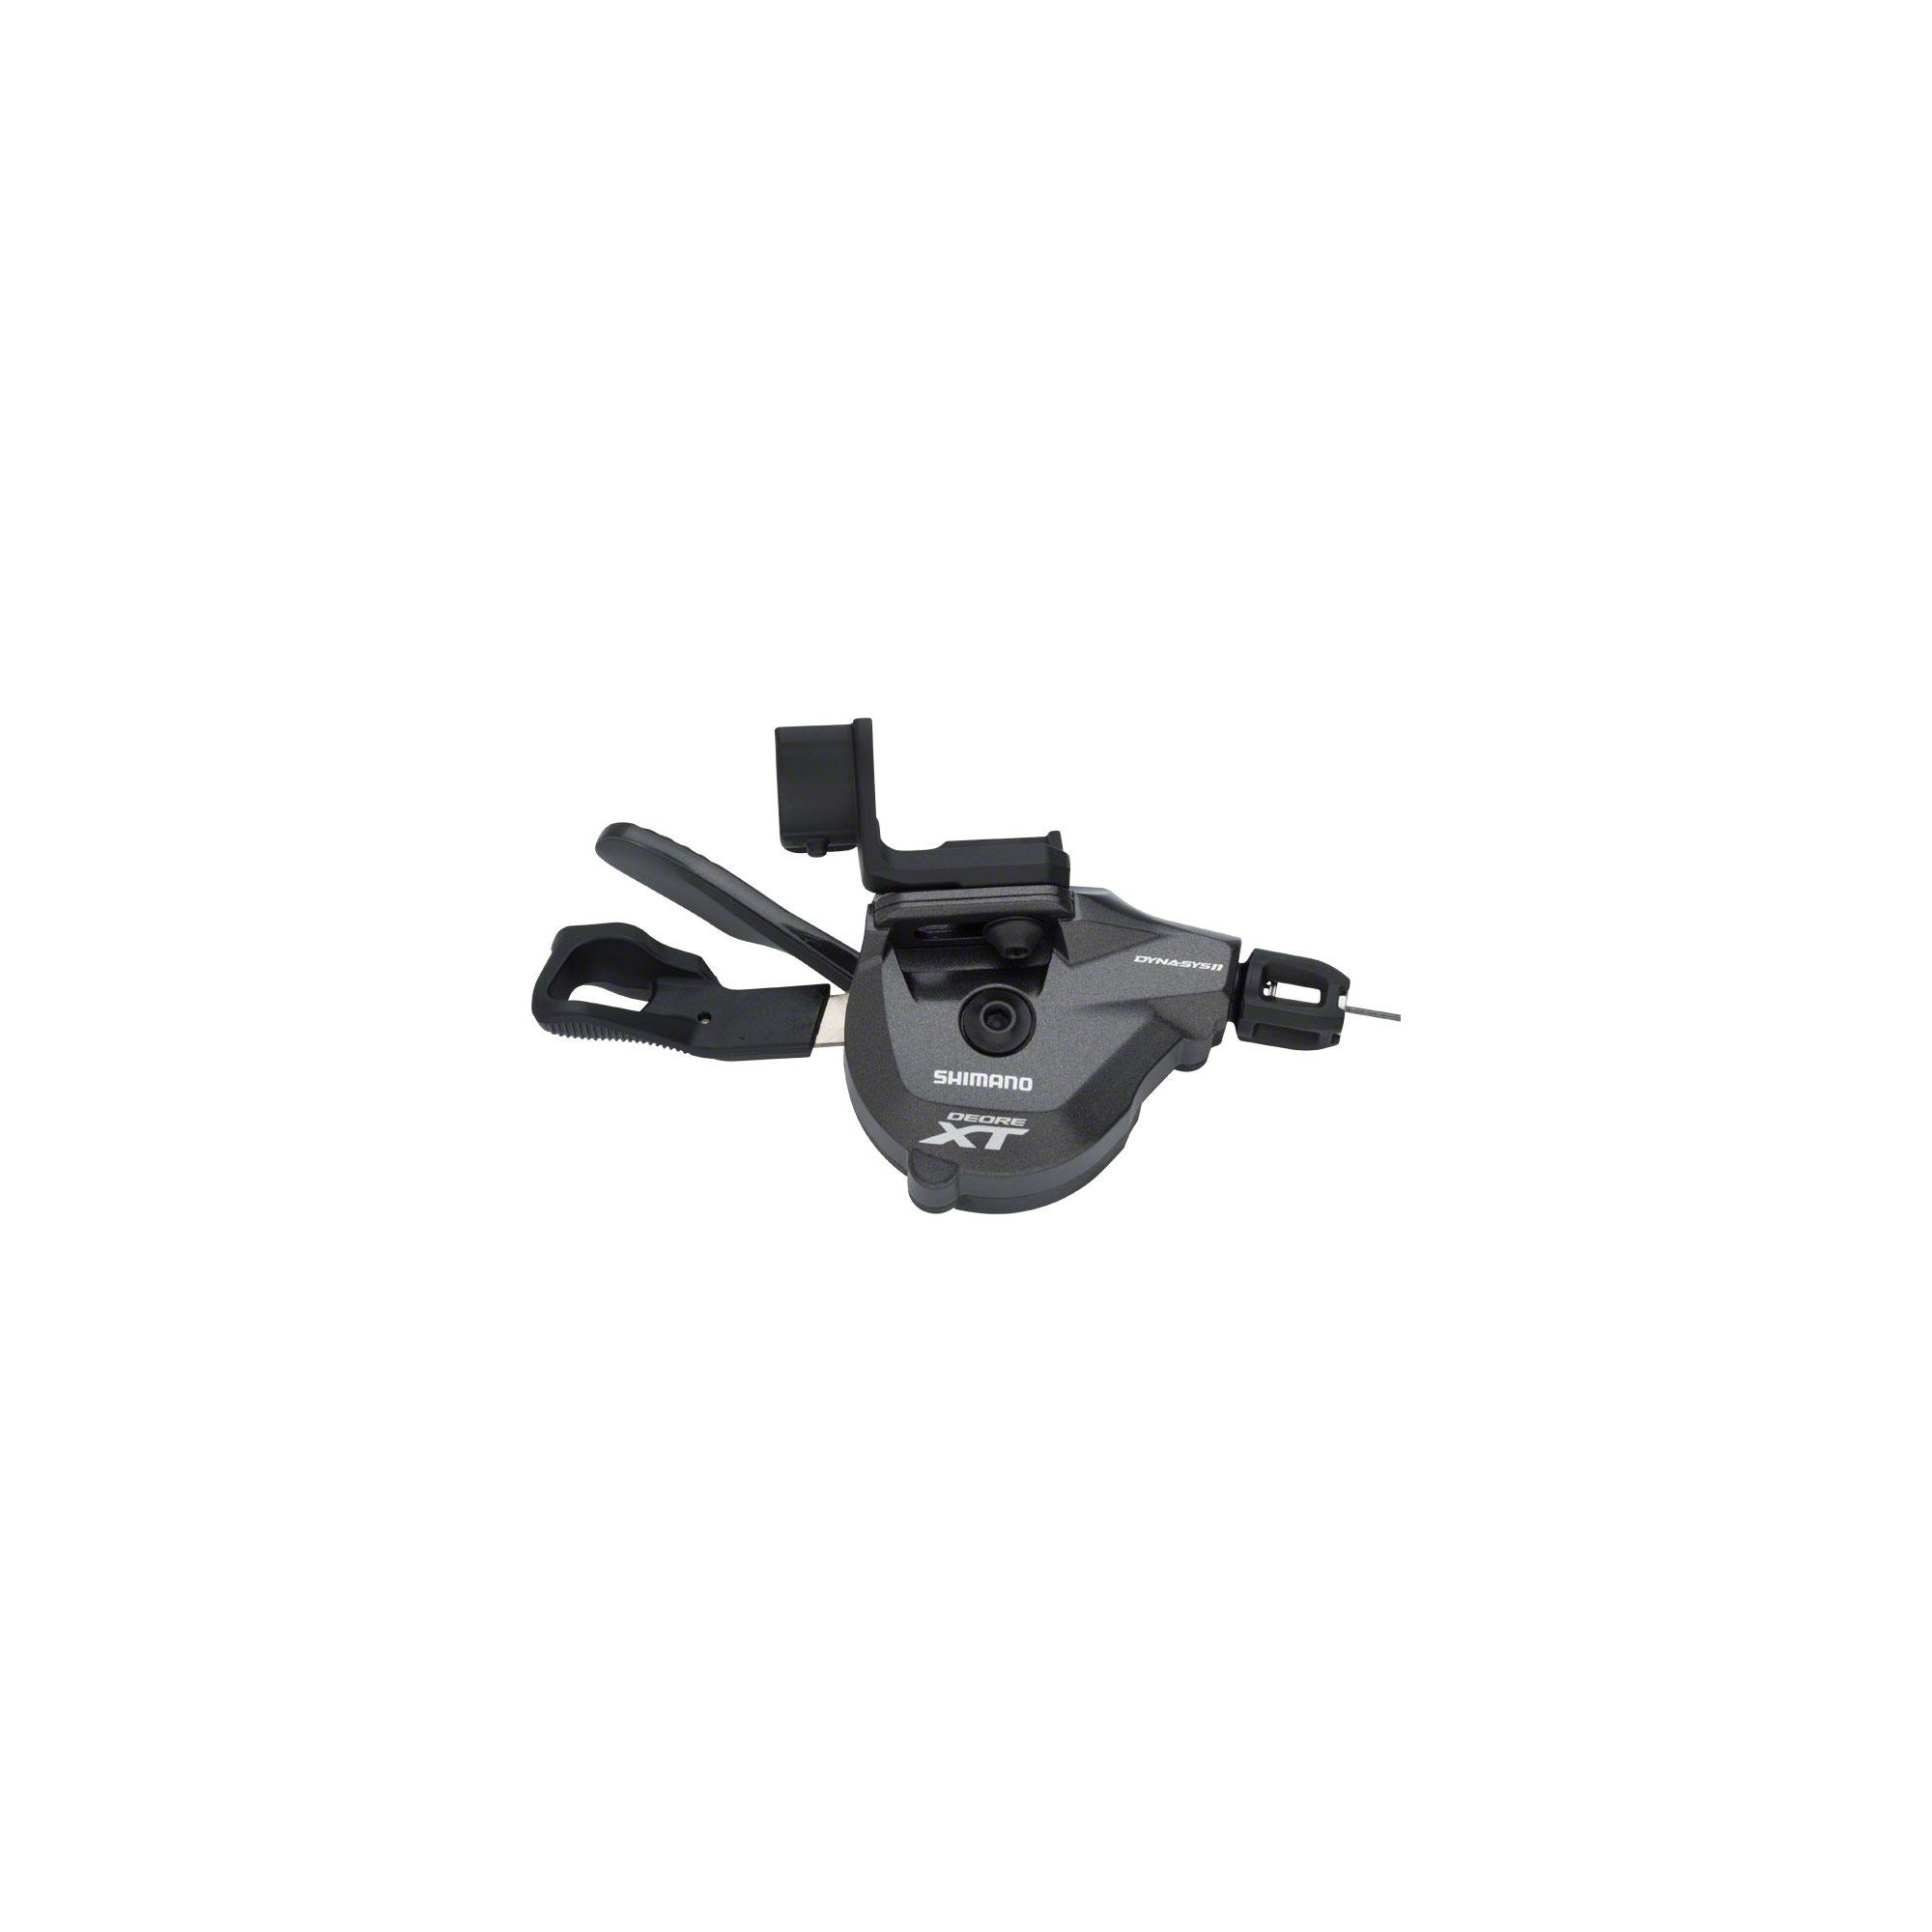 SHIMANO XT SL-M8000 I-Spec II Trigger Shifter Black, Right by SHIMANO